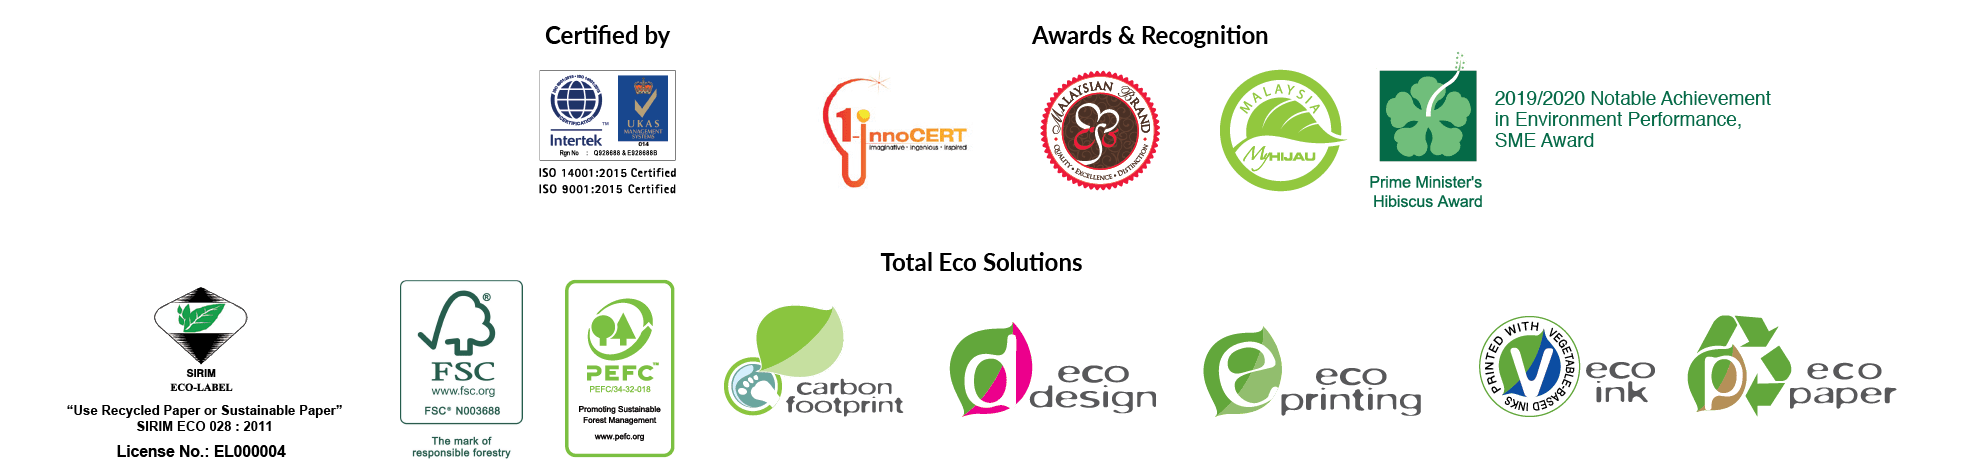 Cerified,Awards-&-Recognition_2021_web